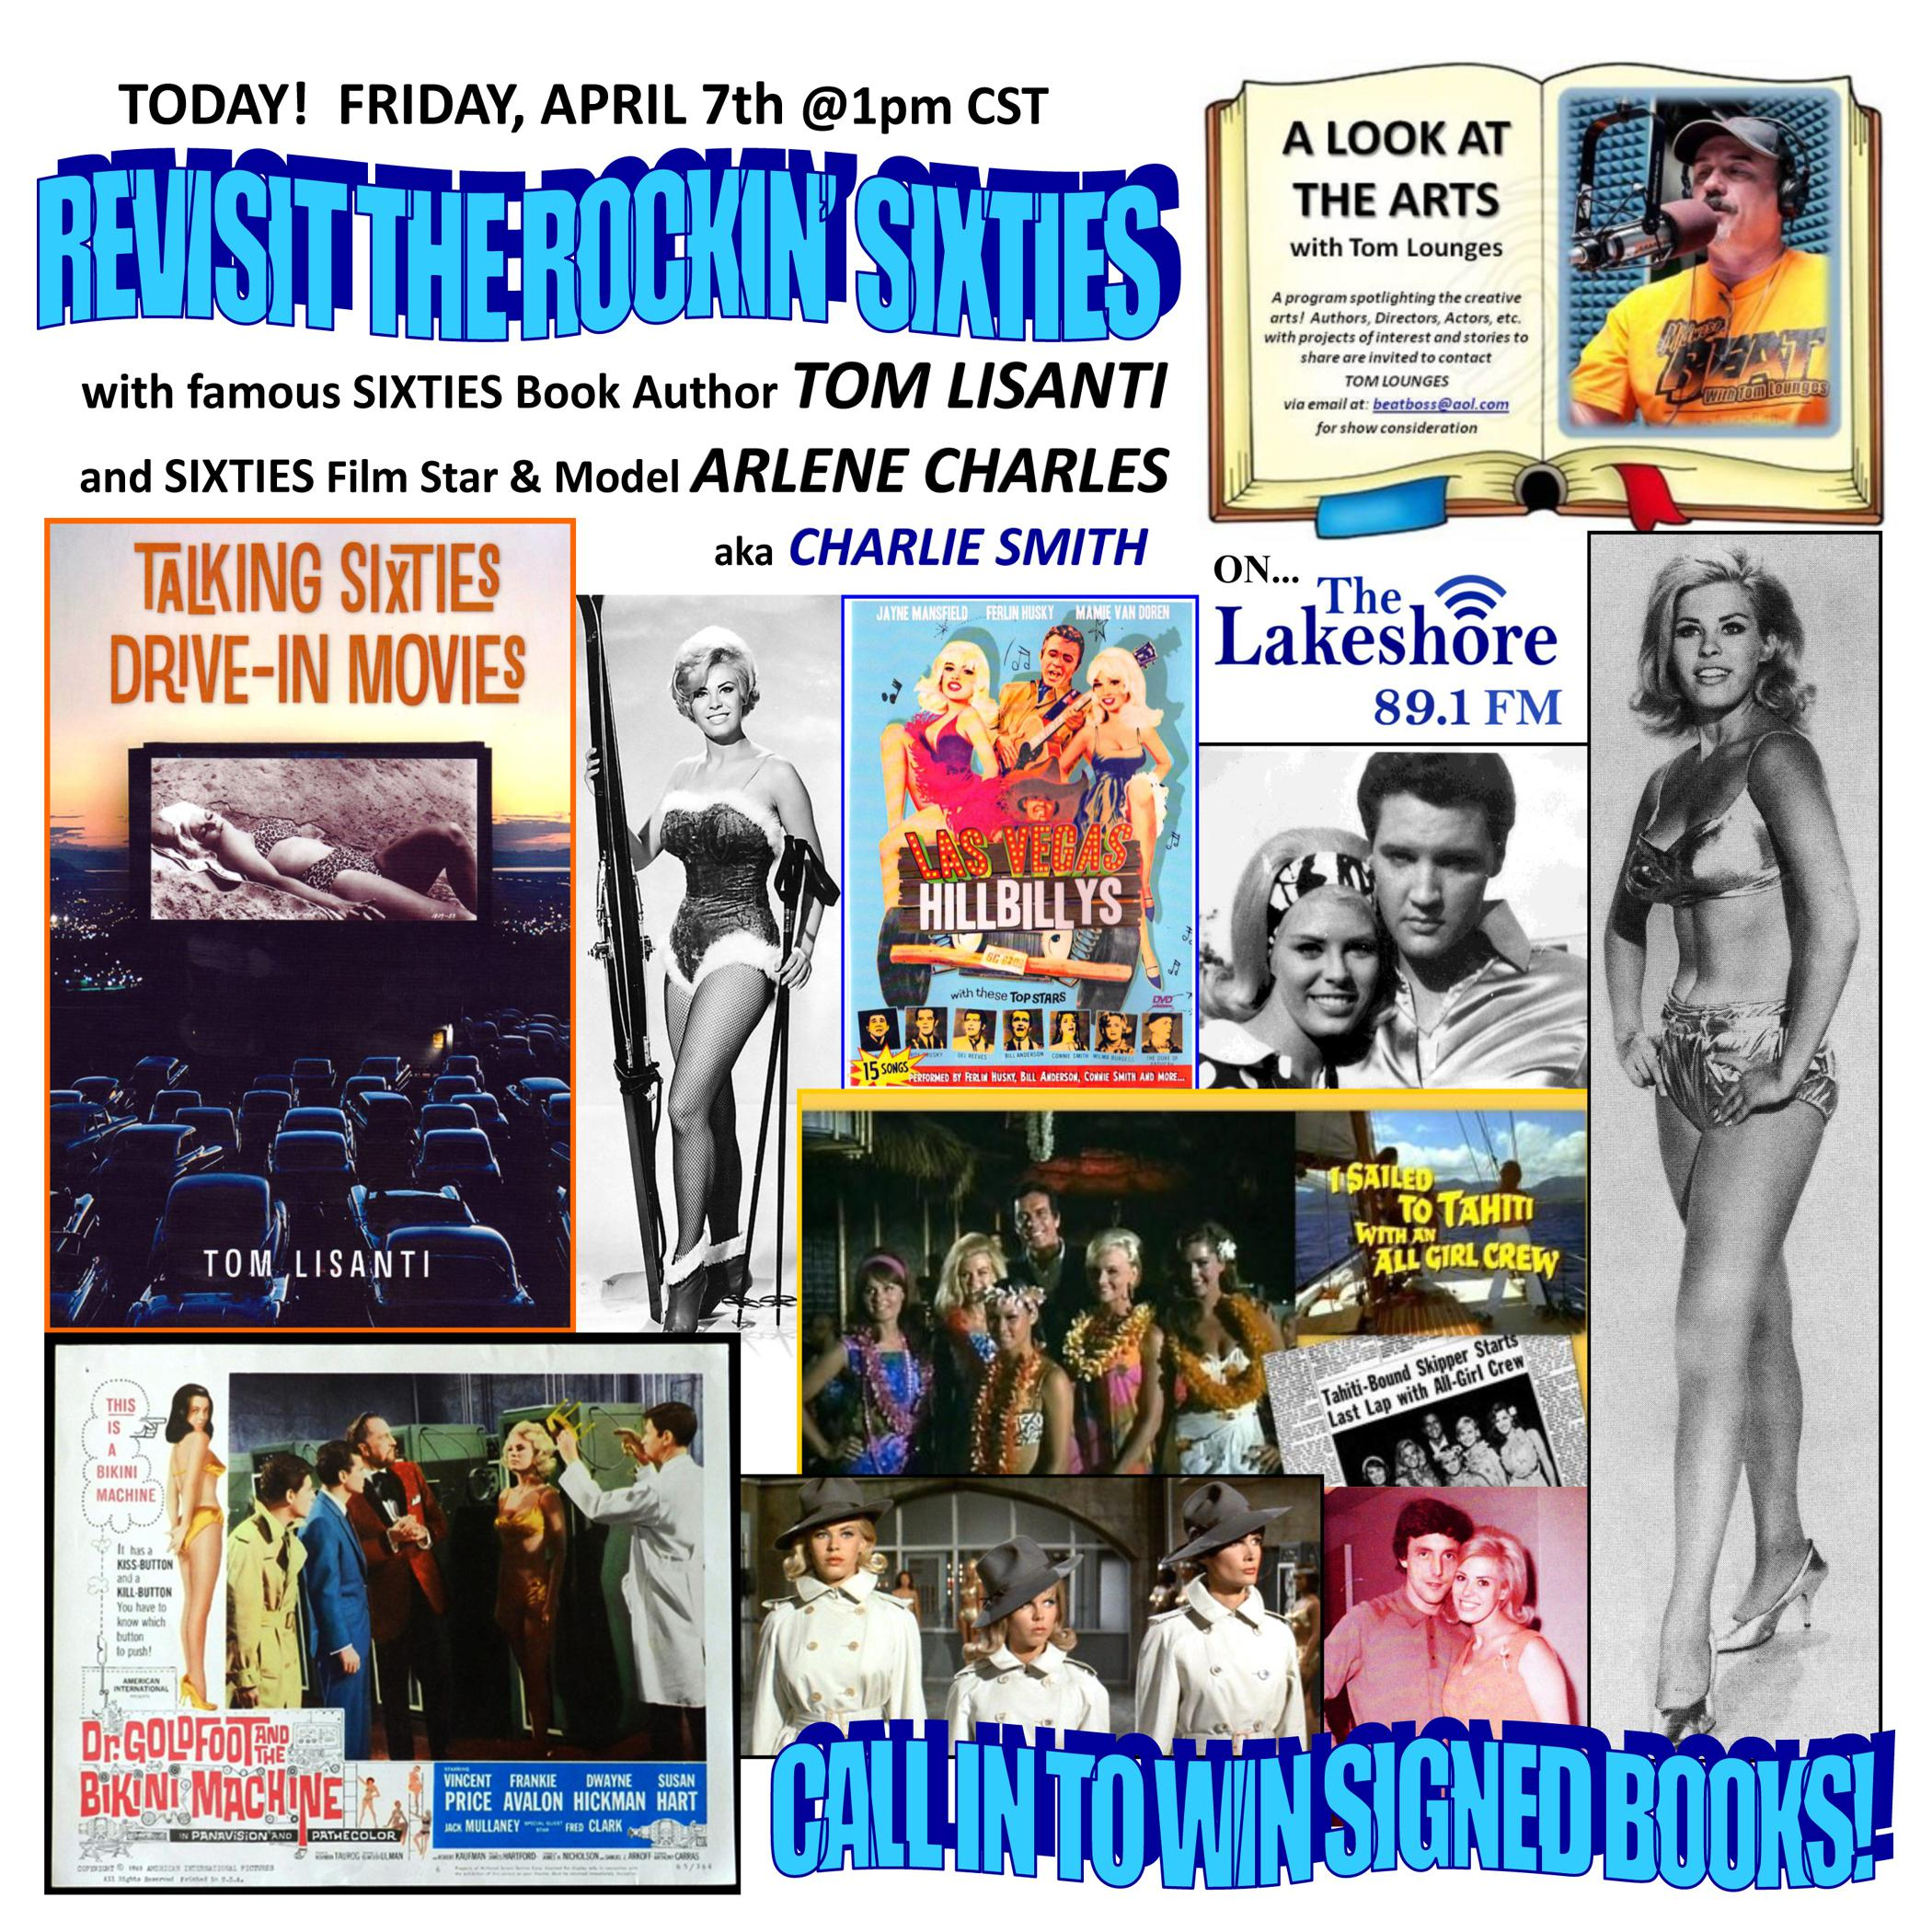 Also on this program is Sixties Film & TV actress ARLENE CHARLES (aka  Charlie Smith), who appeared in films with Elvis, Frankie Avalon, Vincent  Price and ...